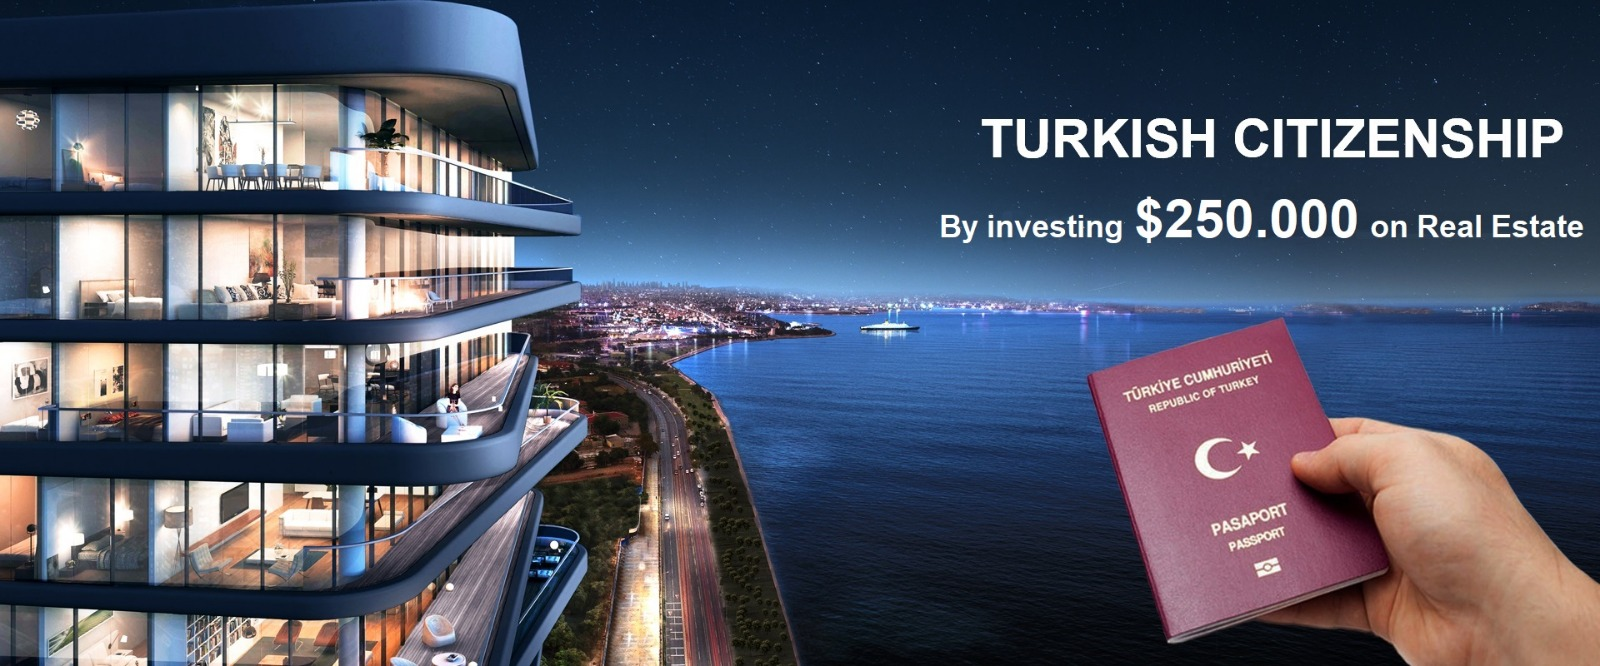 What You Wonder About Getting Turkish Citizenship by Investment